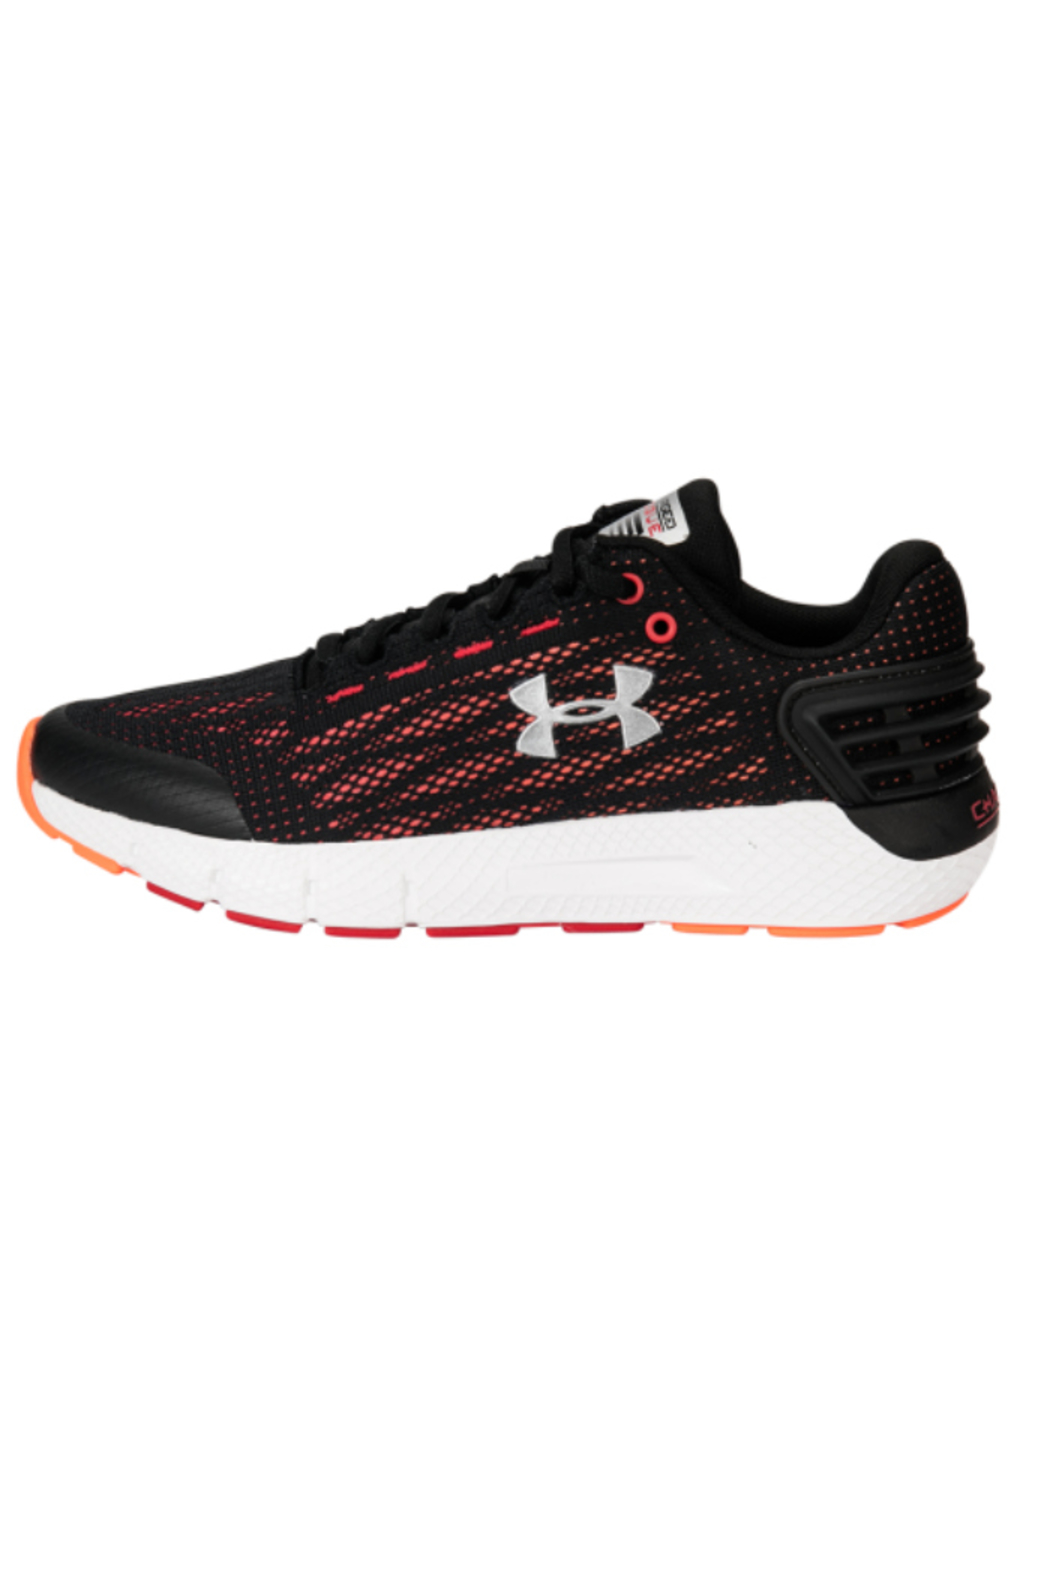 Under Armour UNDER ARMOUR CHARGED ROGUE - Main Image